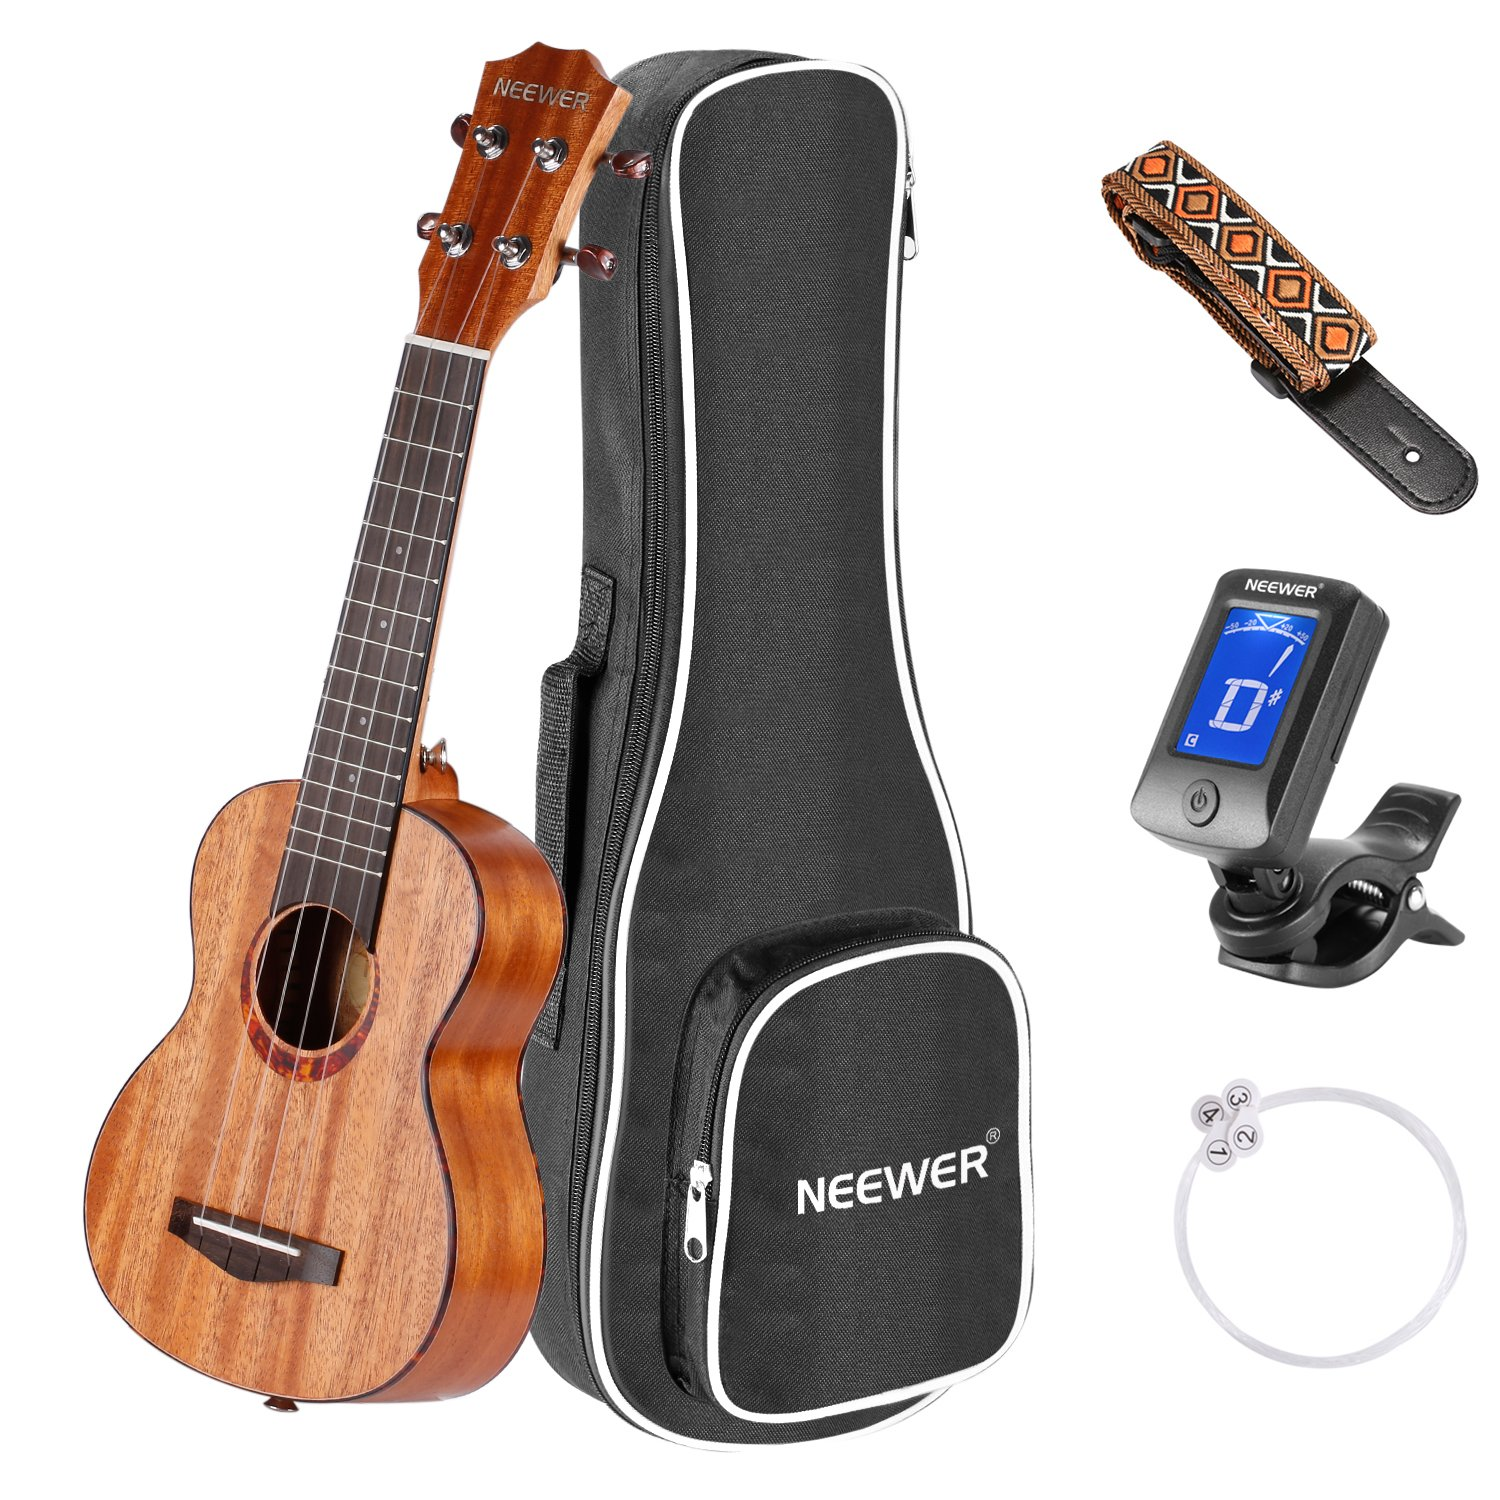 Neewer 23 inches Soprano Mahogany Body Rosewood Fingerboard Ukulele Kit, Bundle with Gig bag, Clip-on Tuner, Carbon String, Shoulder Strap, Ideal for Music Lover, Convenient to Carry 40089599